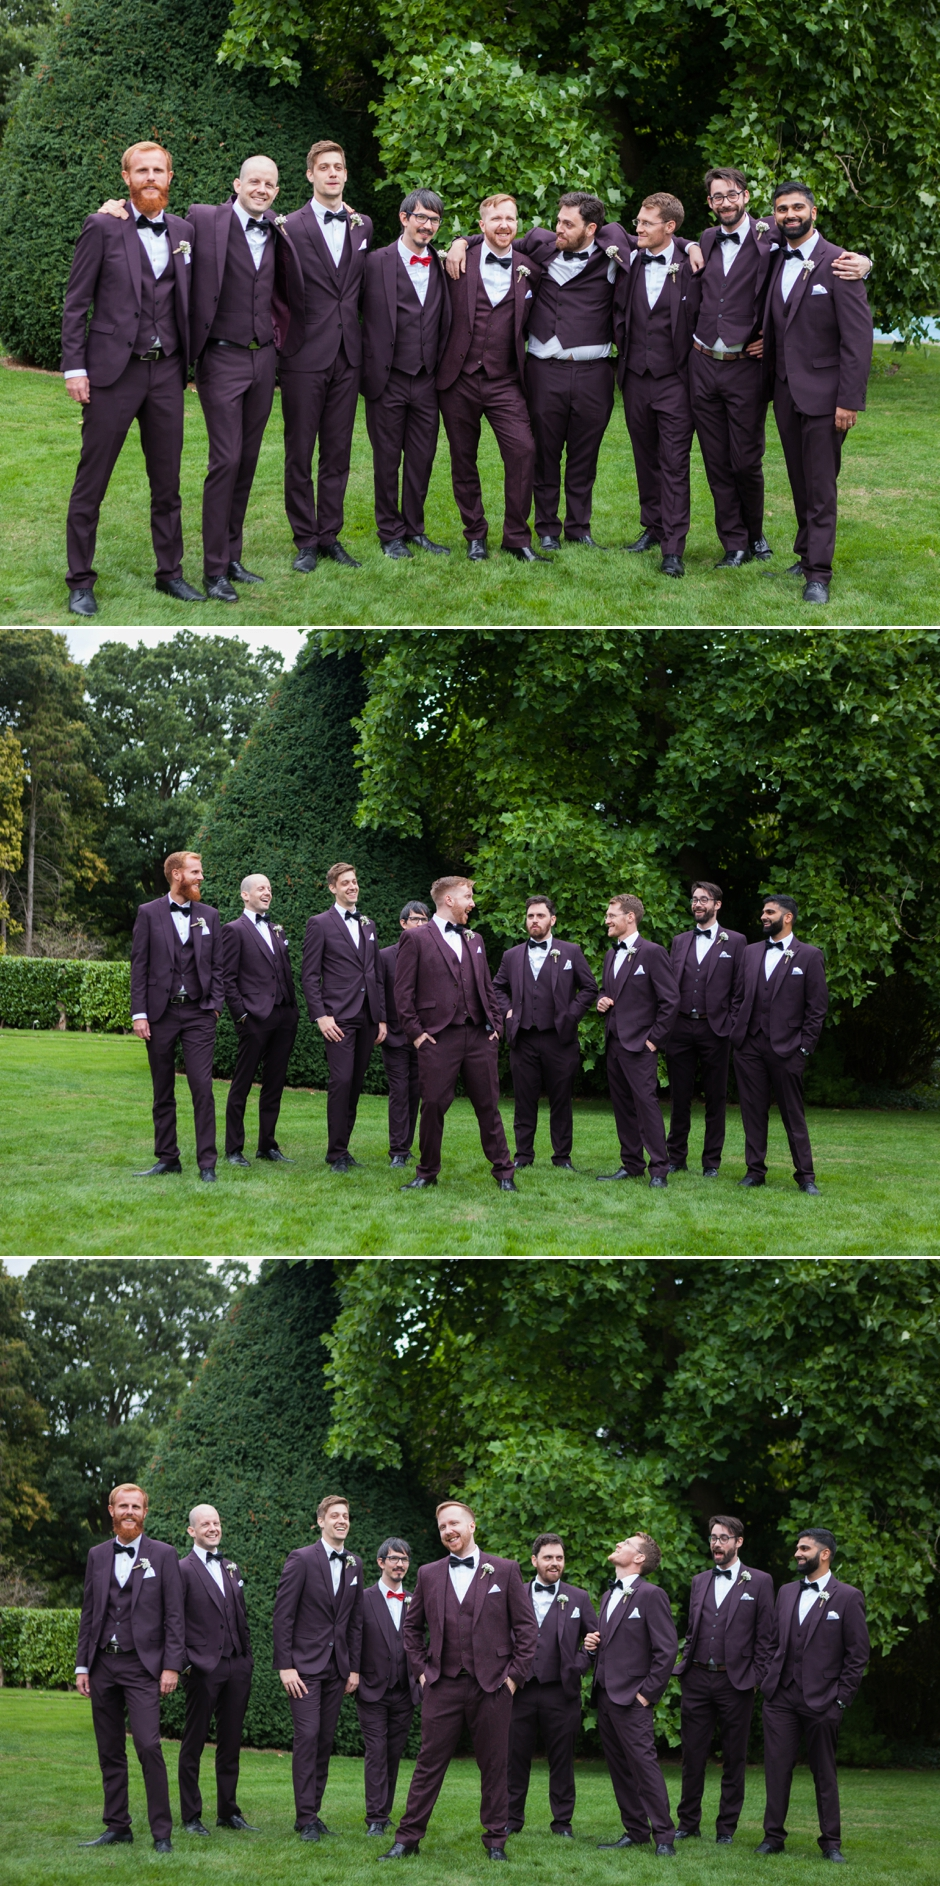 035-ridge-farm-studios-surrey-wedding-photography-bridal-party-groomsmen